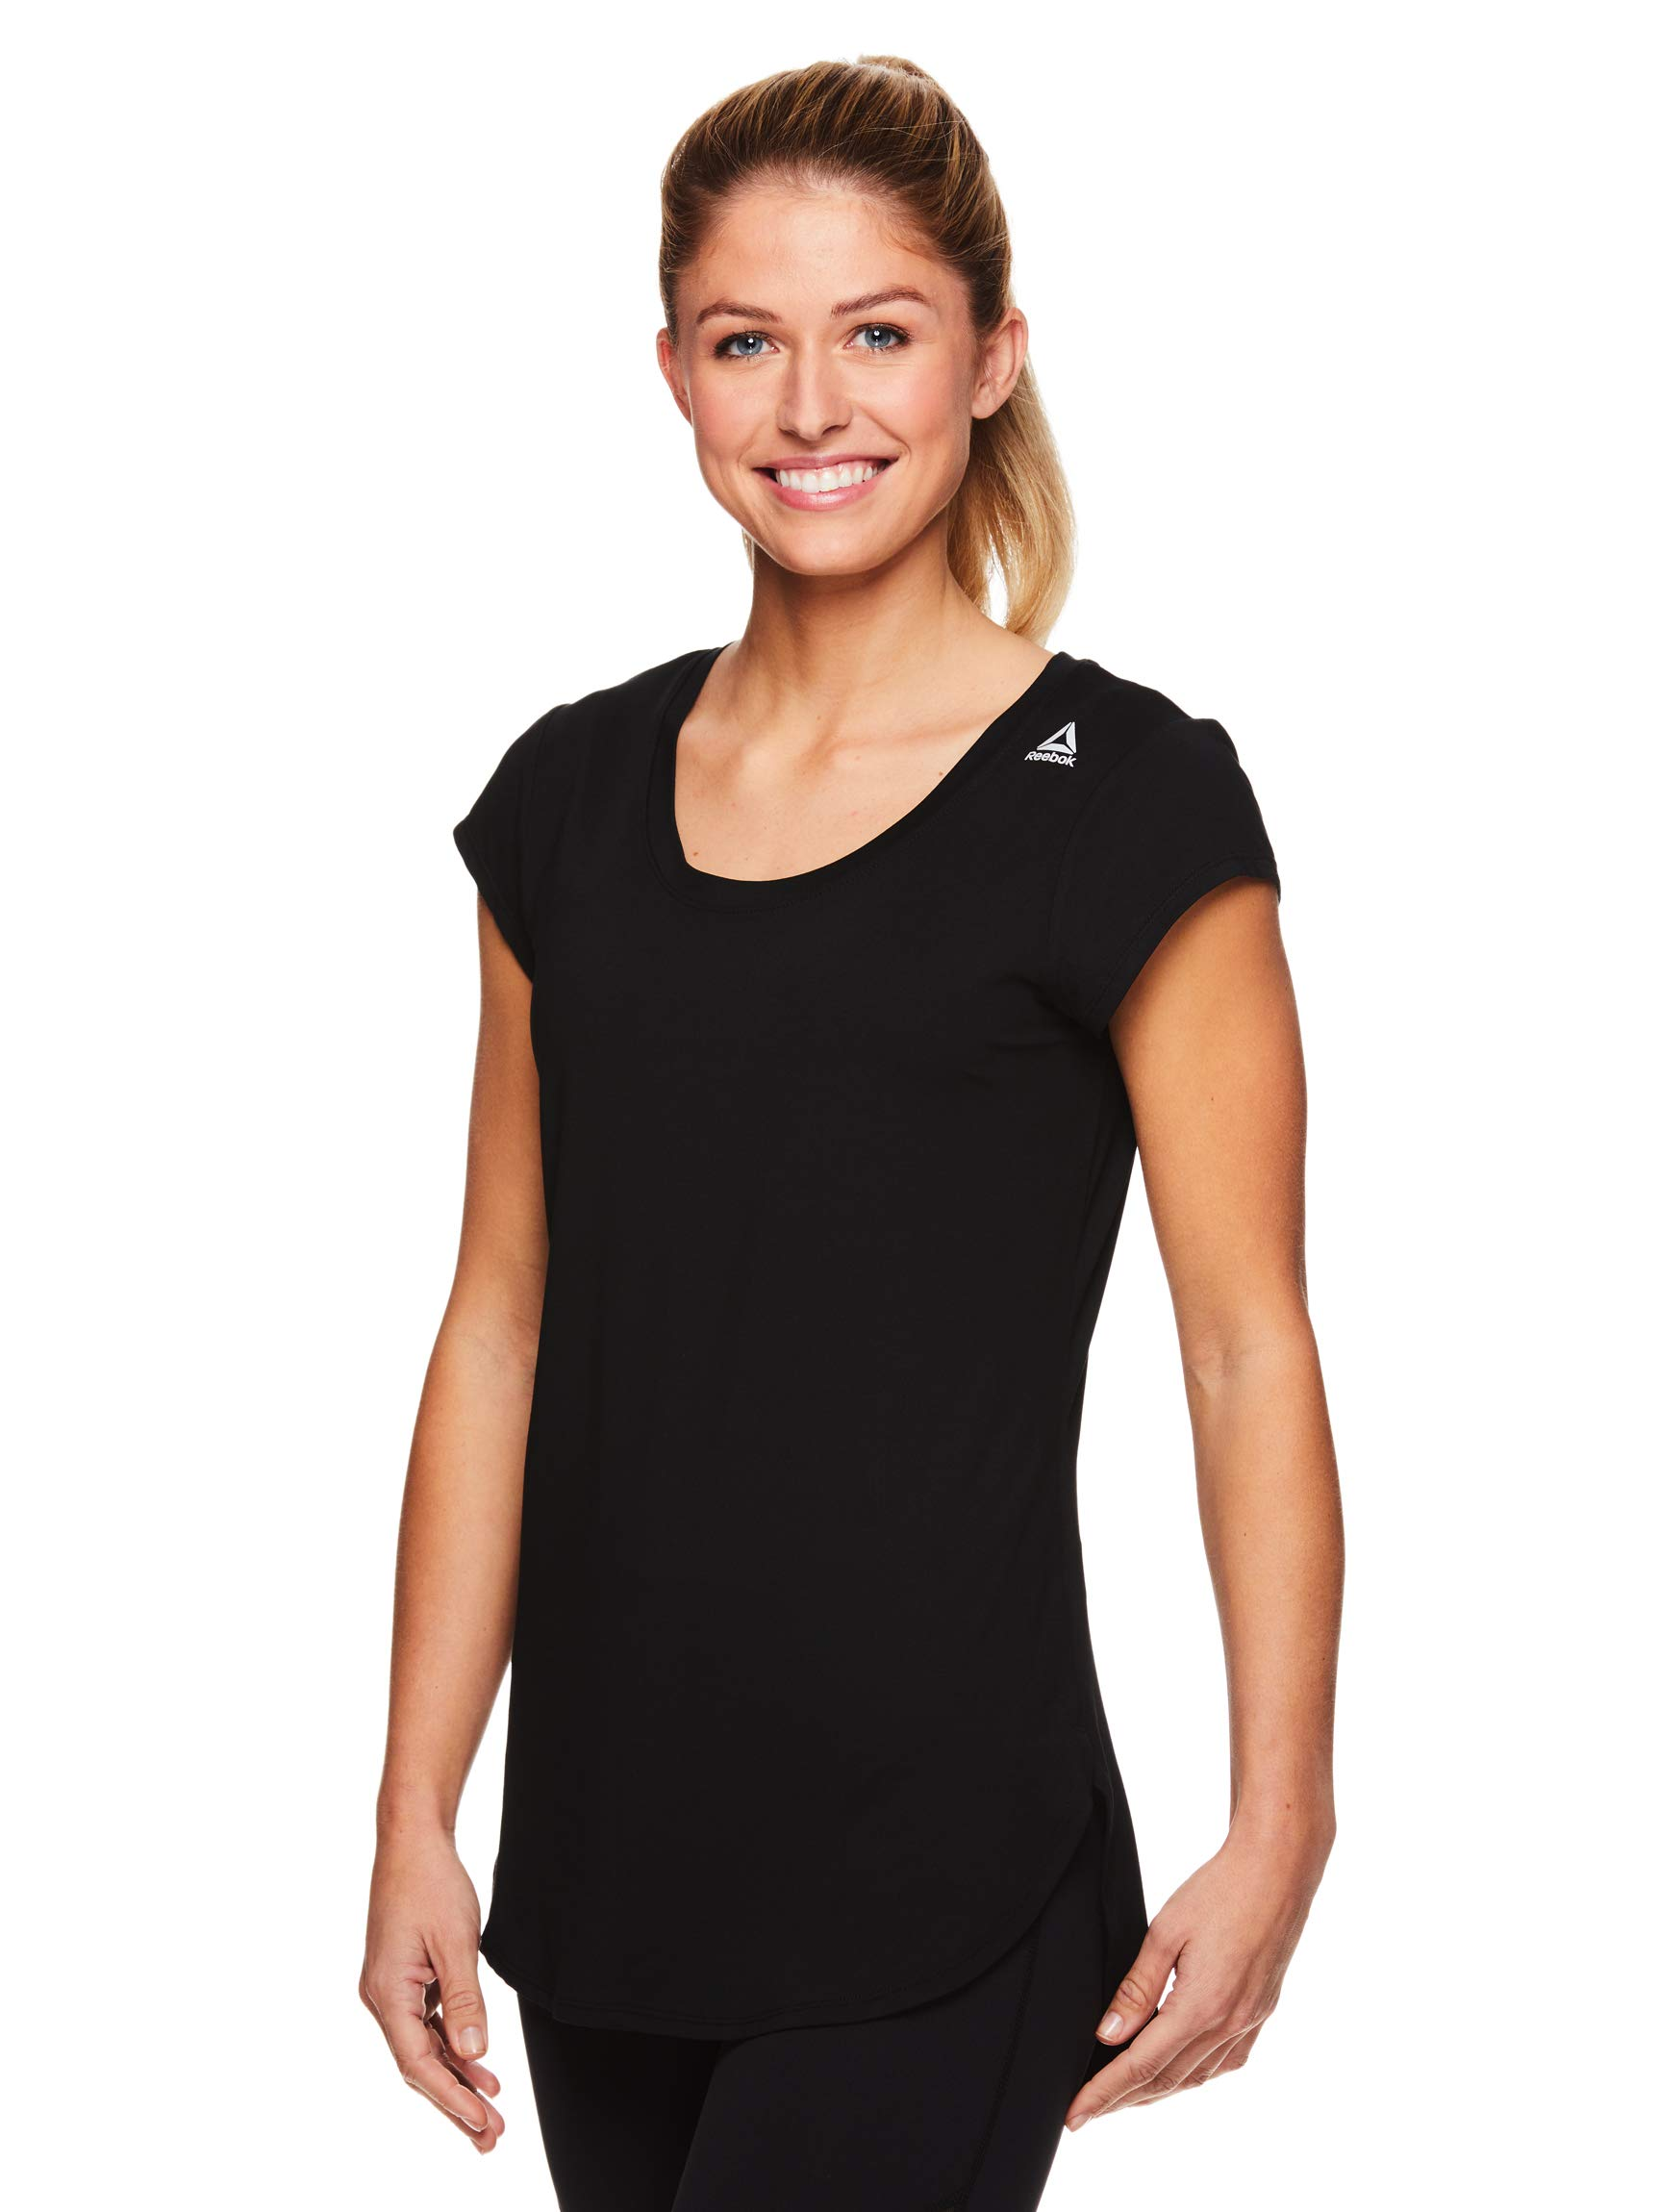 Reebok Women's Legend Performance Short Sleeve T-Shirt with Polyspan Fabric - Black Black, Small by Reebok